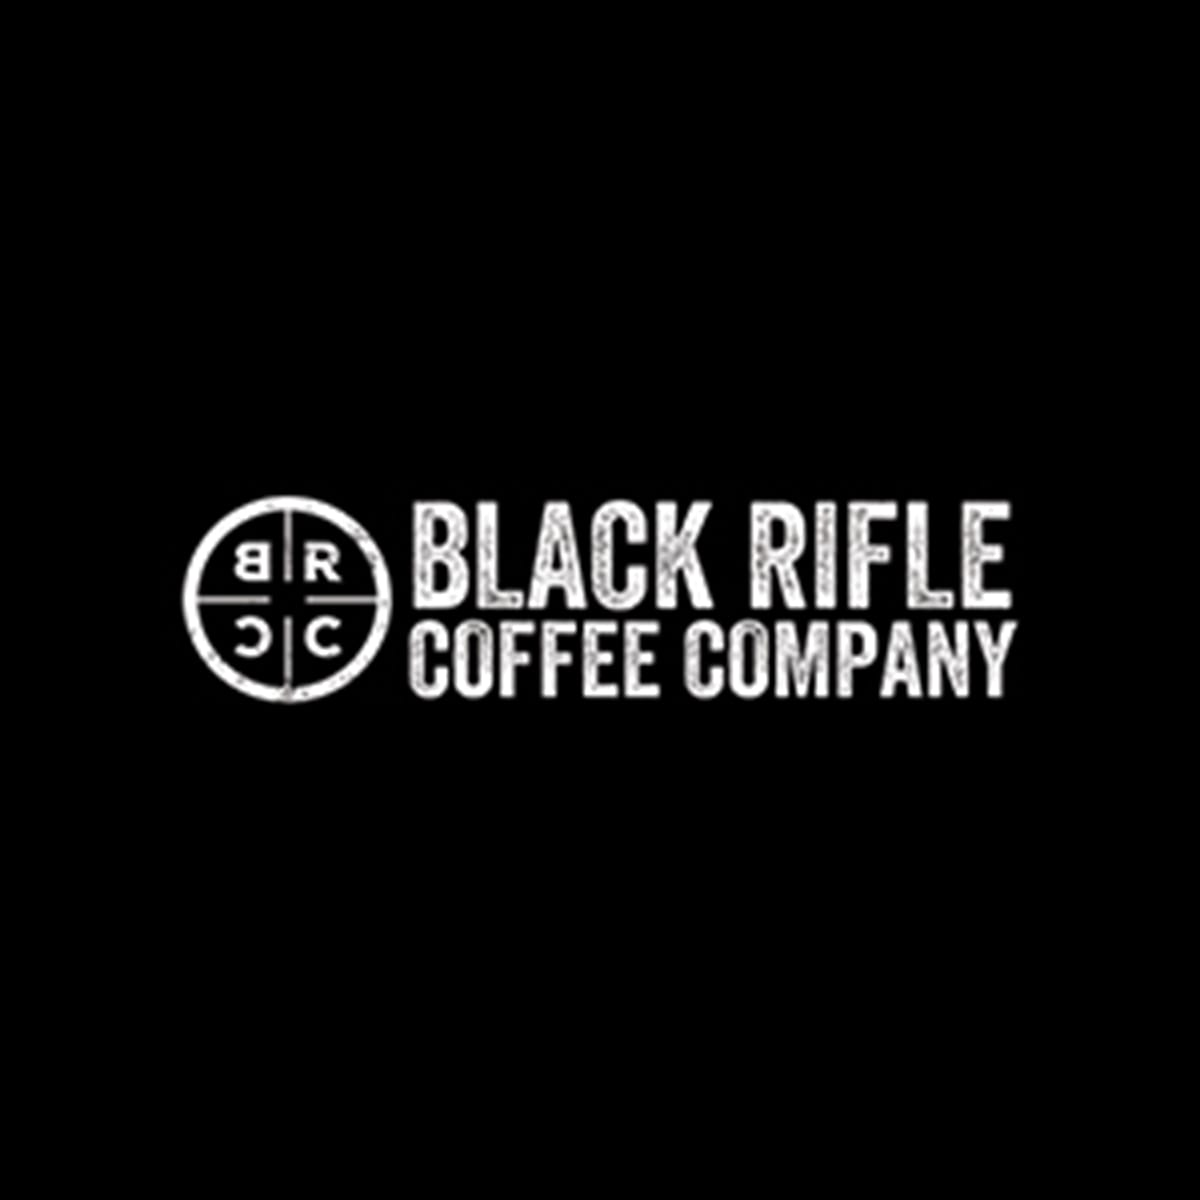 Black rifle coffee company discount code